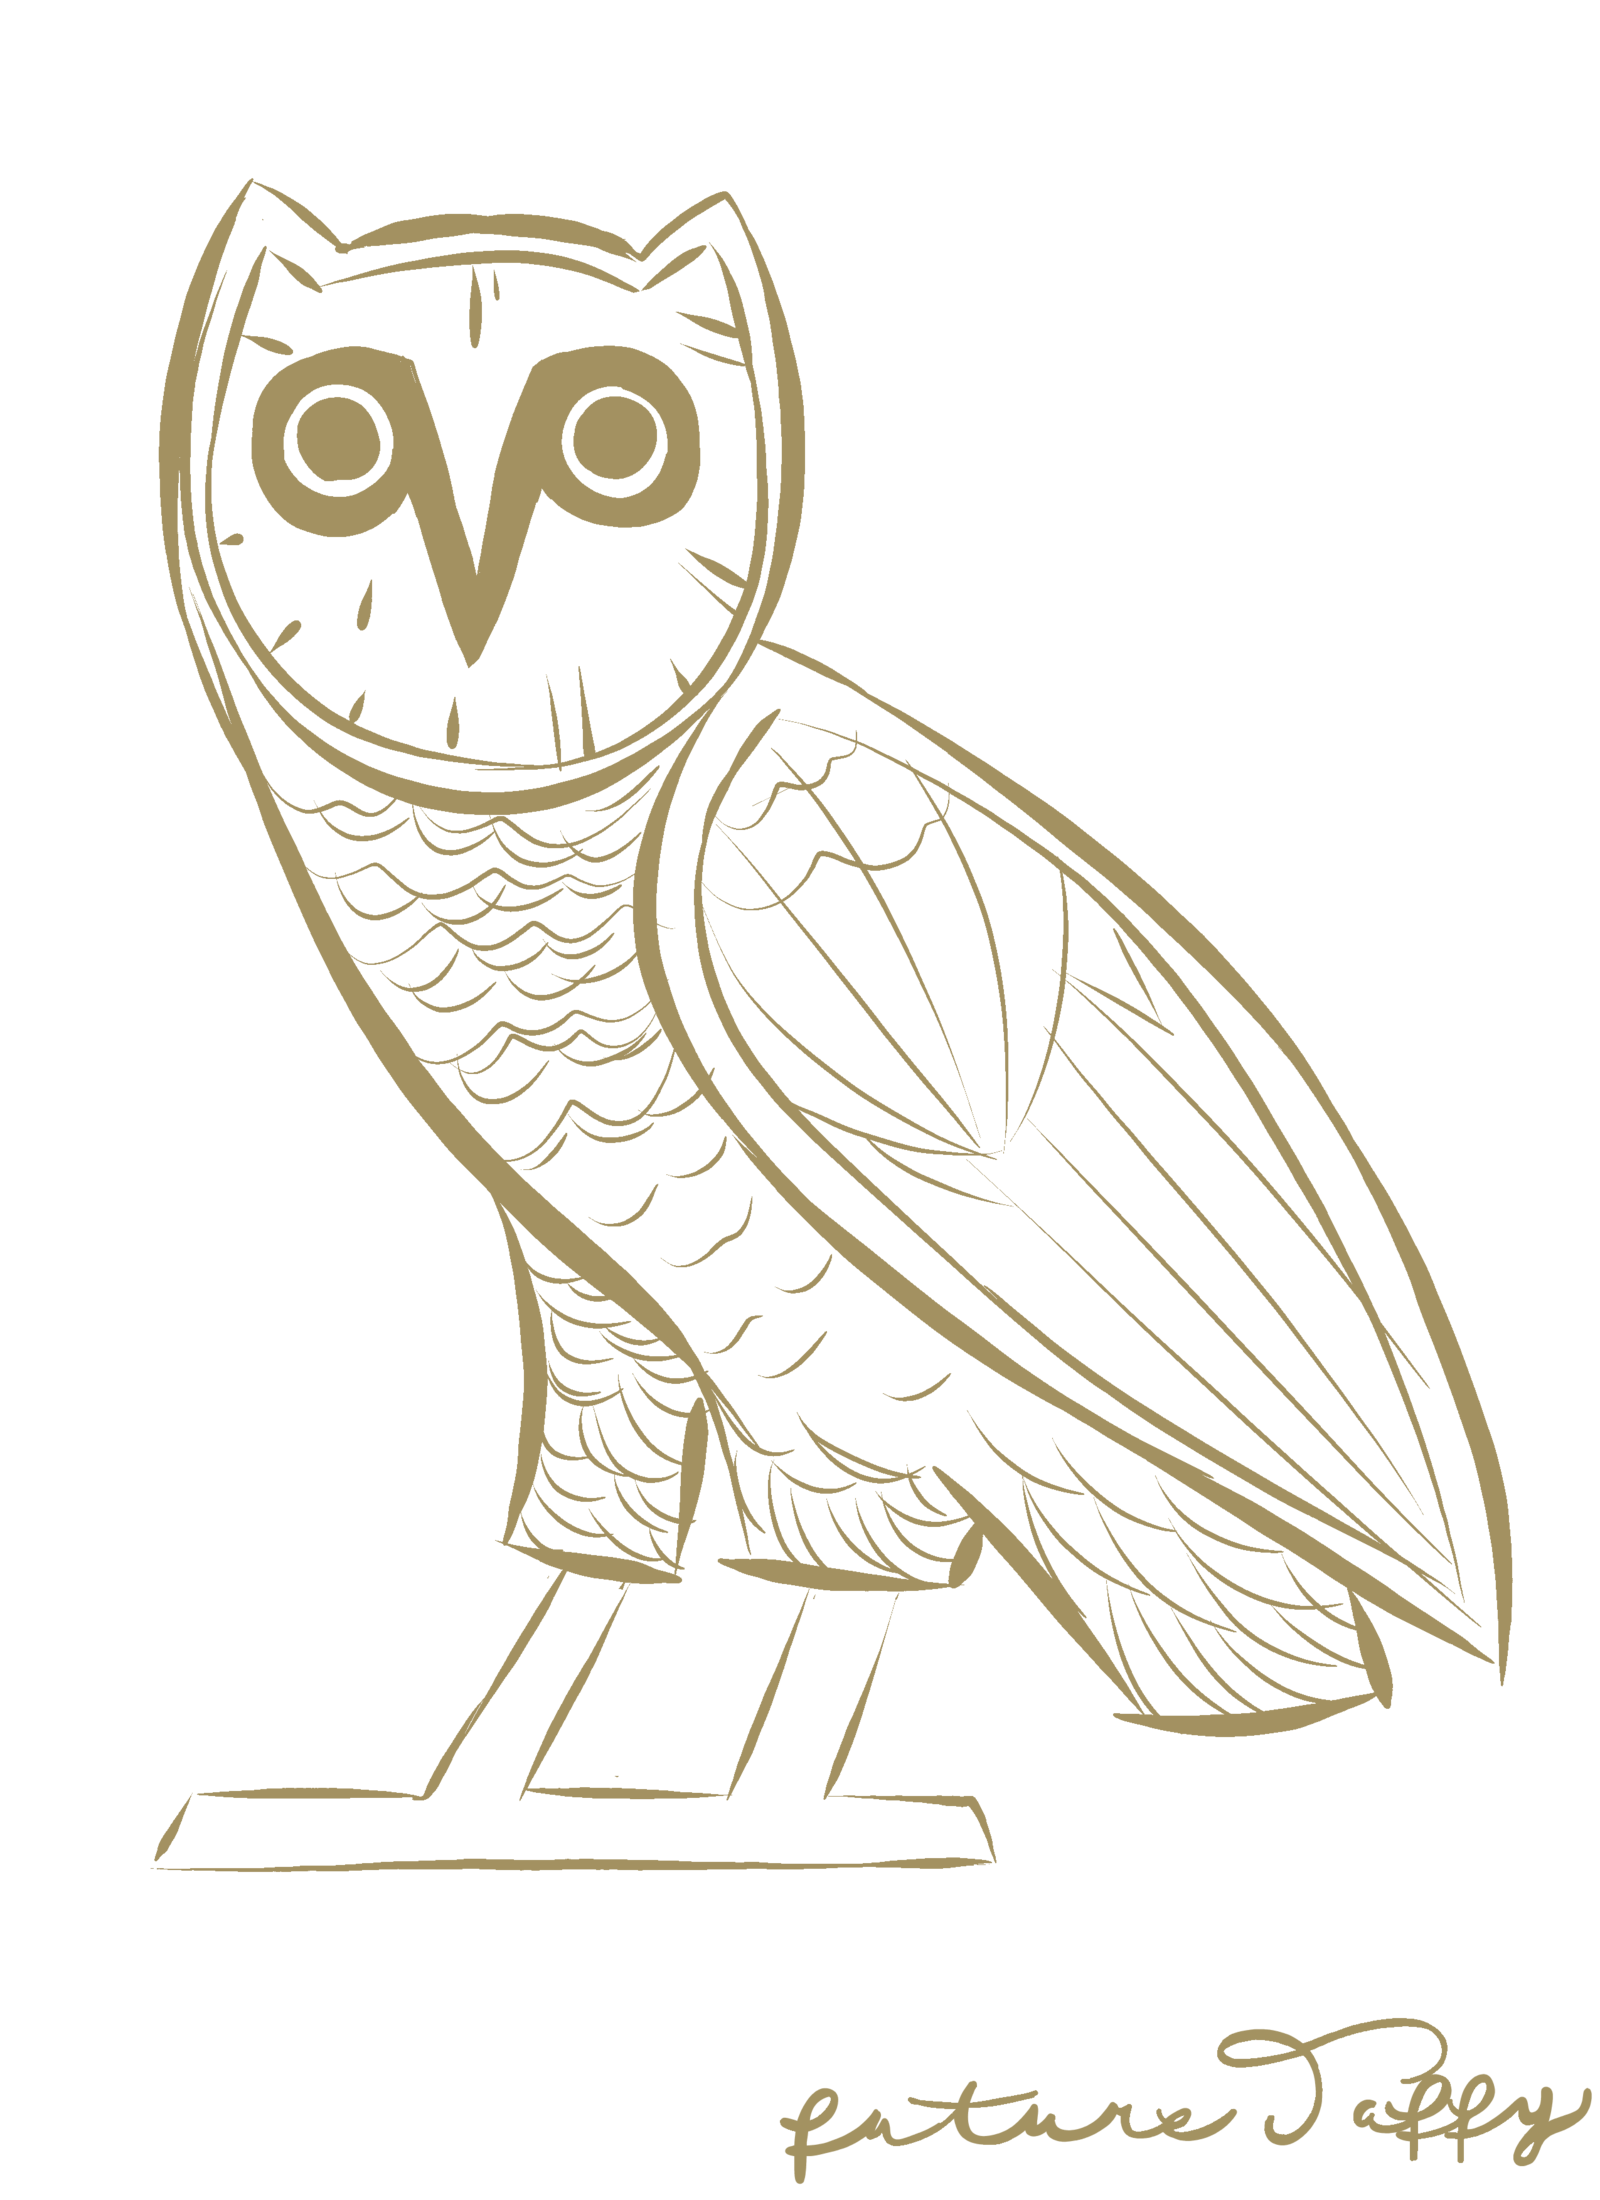 Drake owl png. Collection of ovo